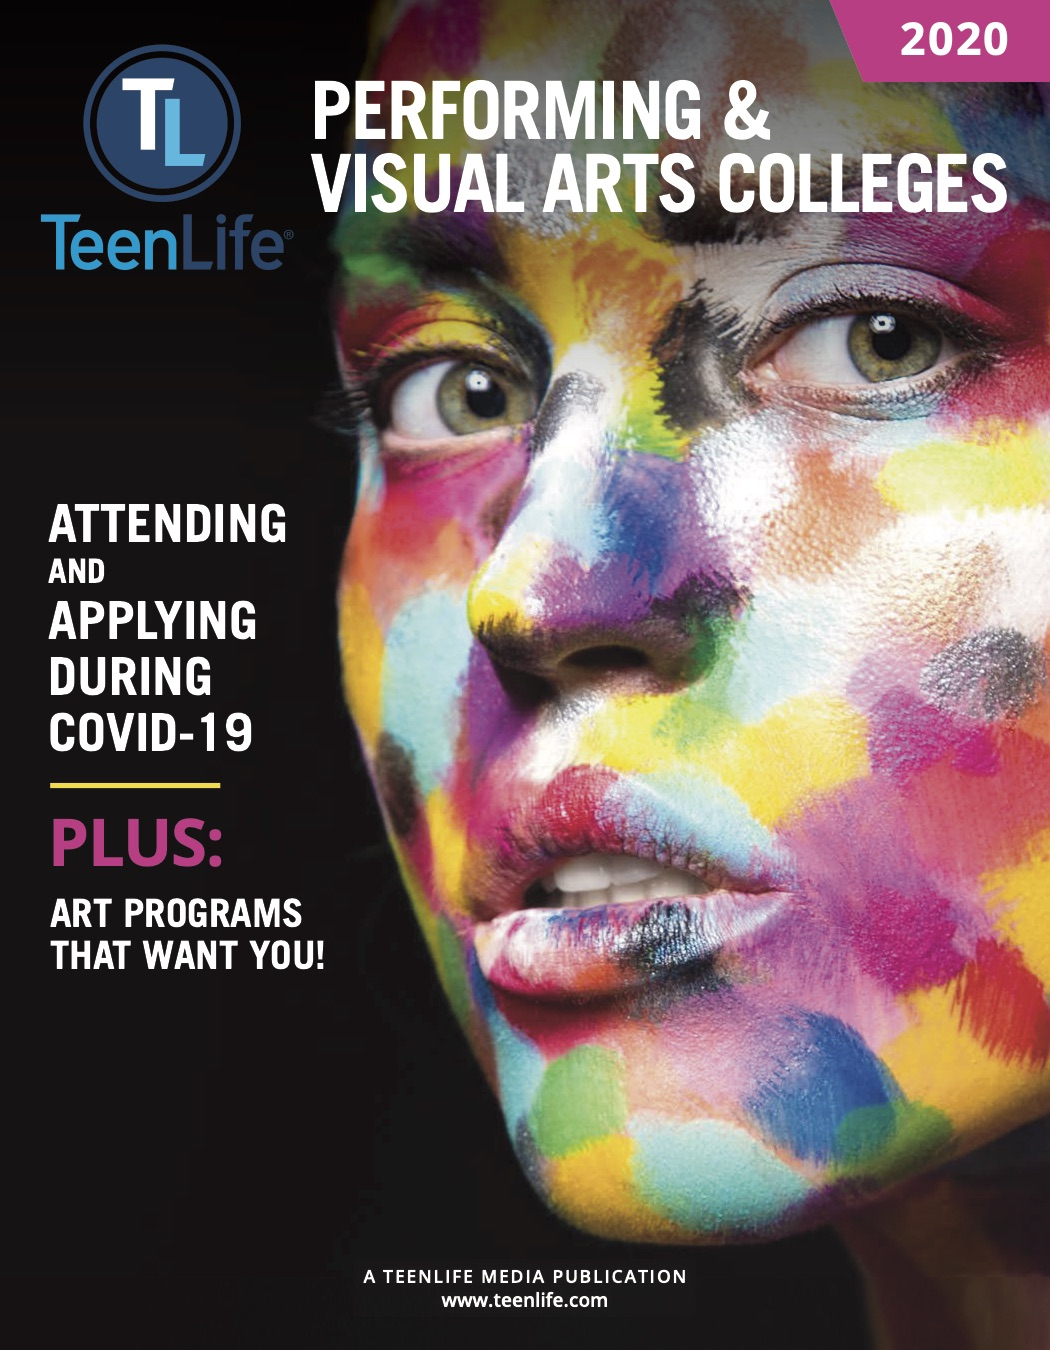 Guide to Performing and Visual Arts Colleges 2020-TeenLife